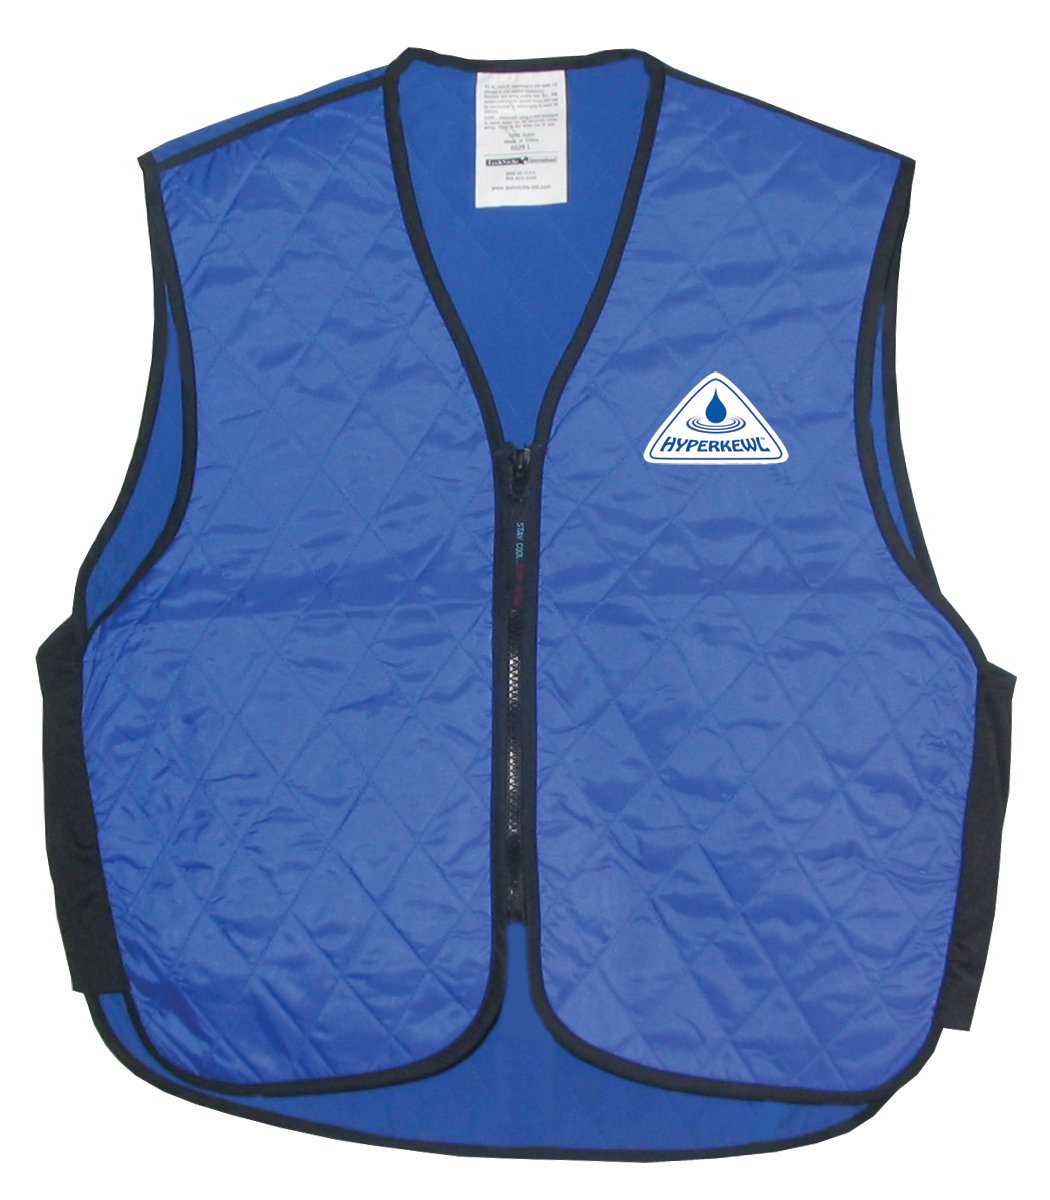 Cooling Sports Vest Review